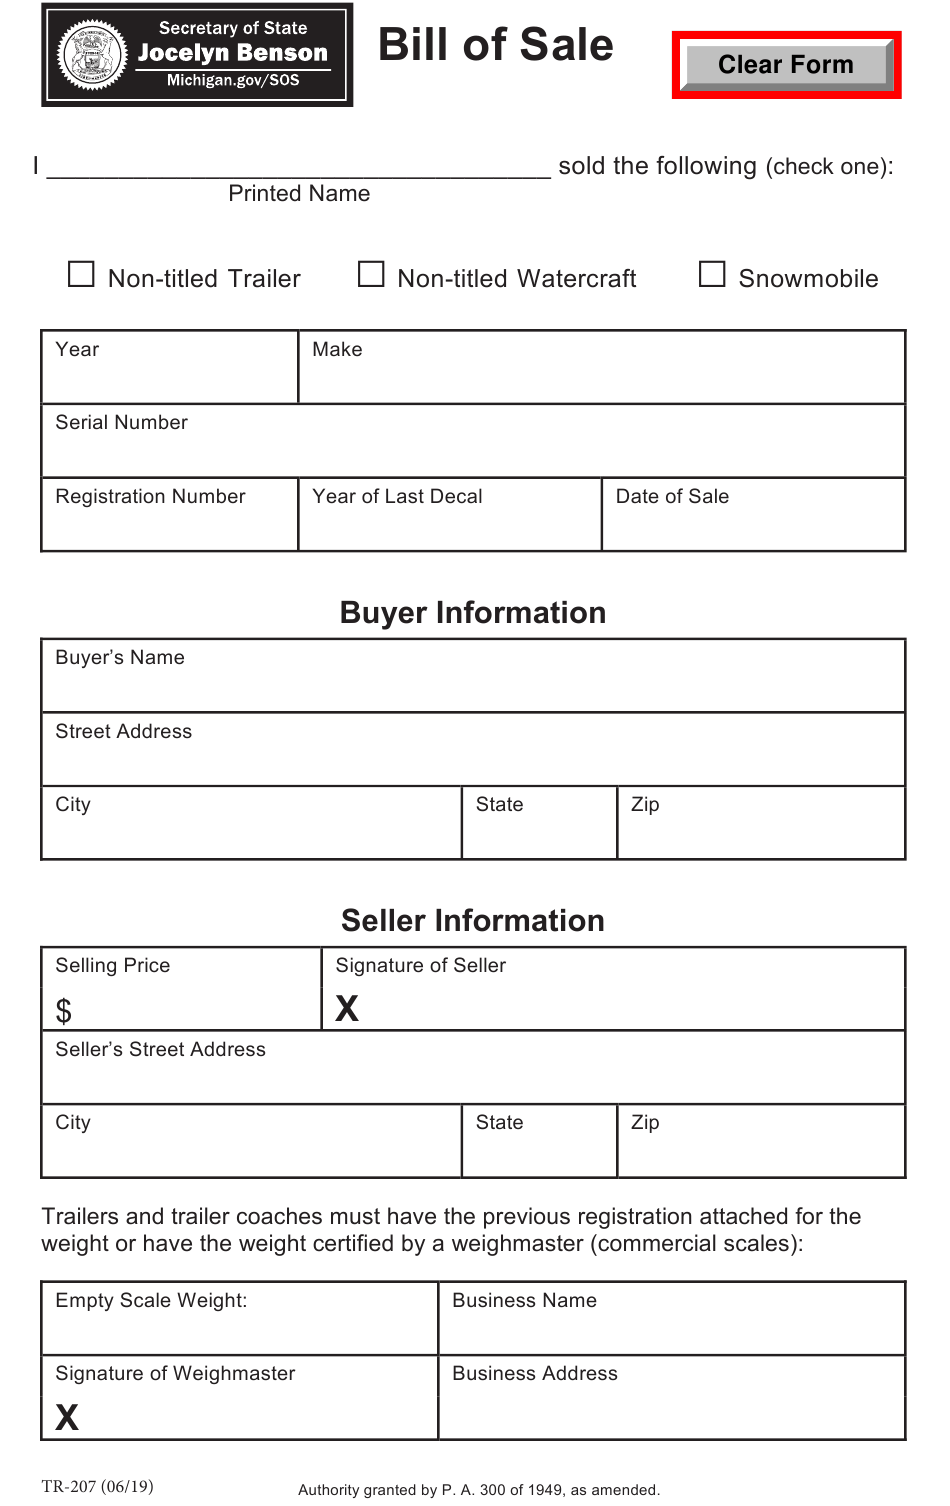 Form Tr-207 Download Printable Pdf Or Fill Online Bill Of